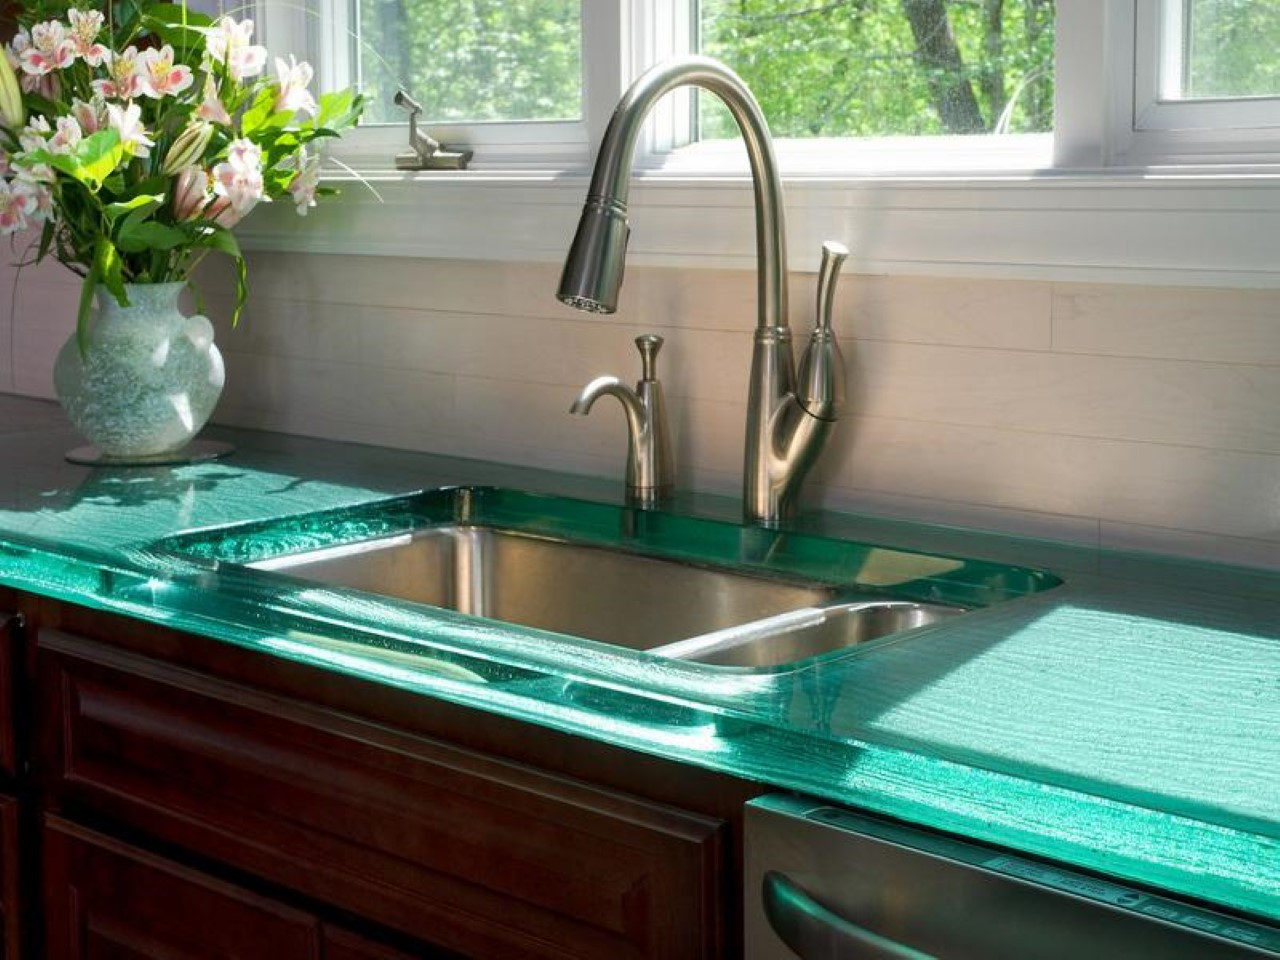 Inexpensive Kitchen Counter  Creative Kitchen Counter top Design Disguises Low Cost